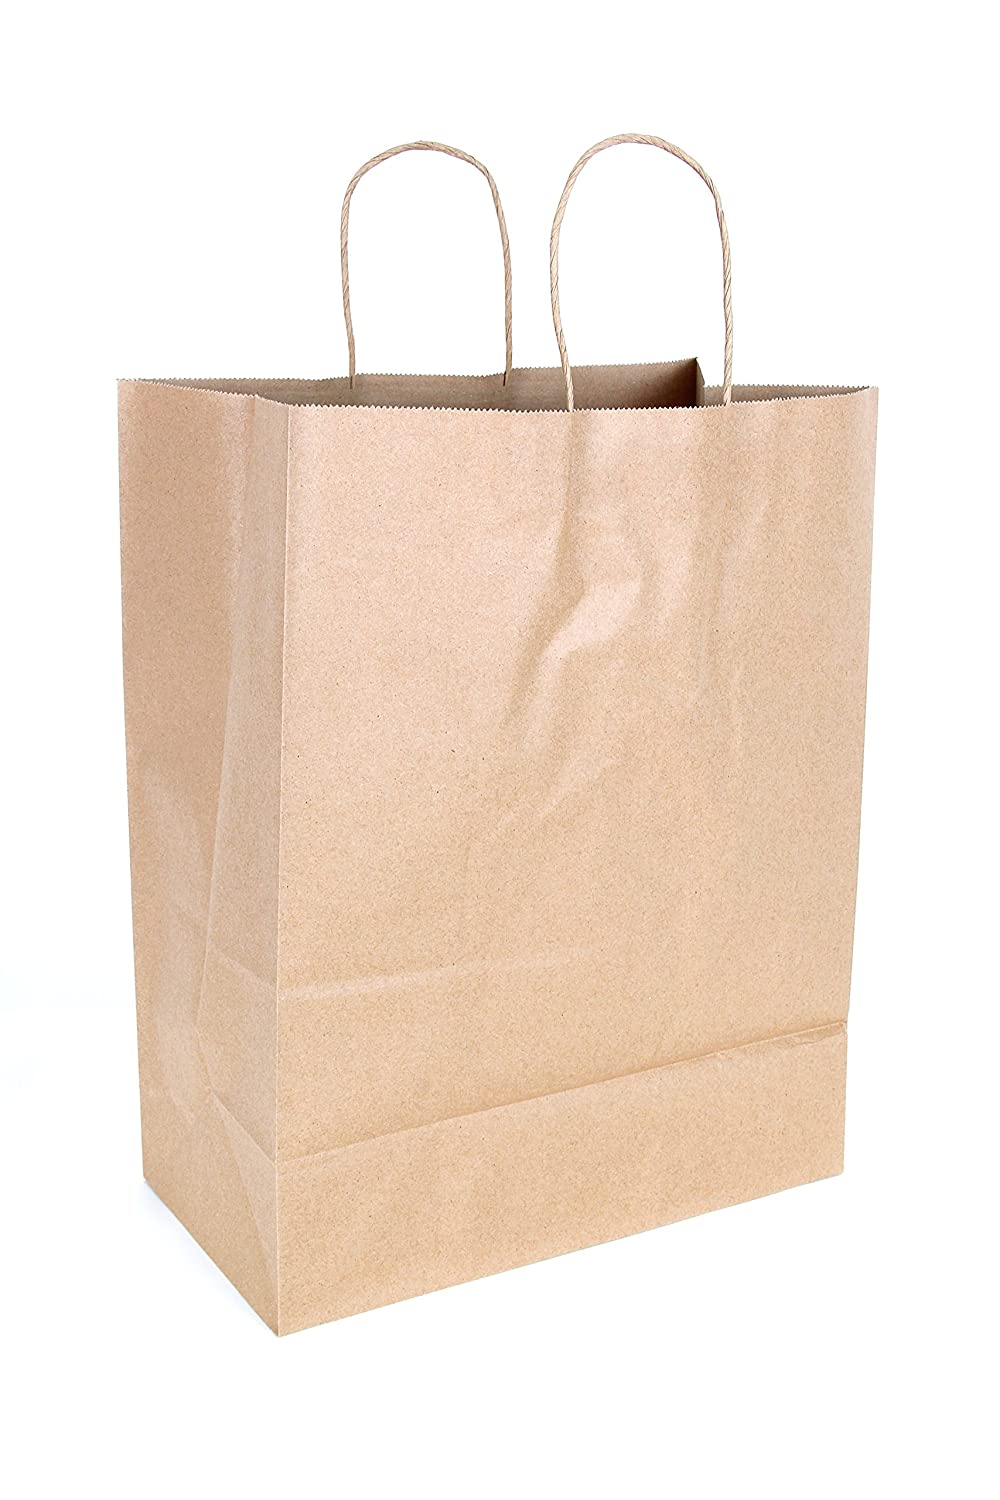 2dayShip Paper Retail Shopping Bags with Rope Handles 13 x 7 x 17 inches, 25 Count CucinaPrime